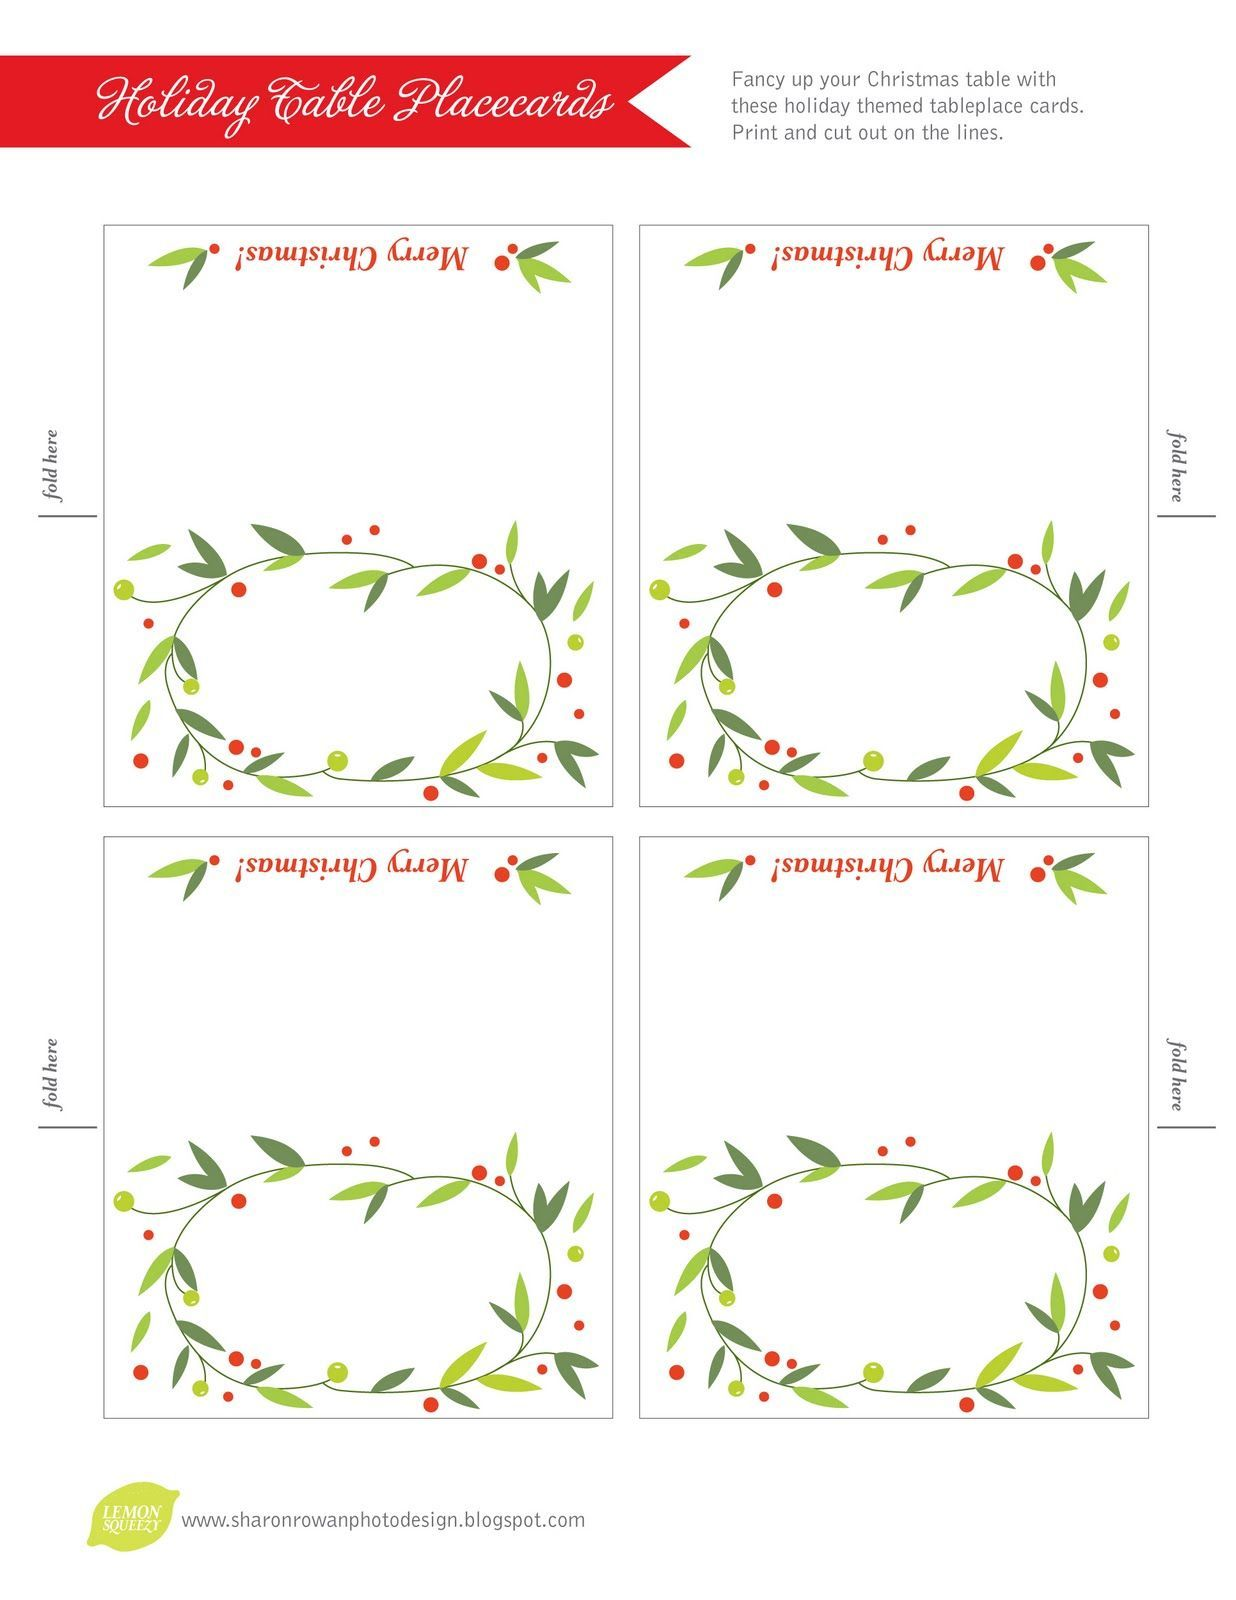 007 Template Ideas Printable Place Cards Breathtaking Regarding Paper Source Templates Place Cards In 2020 Christmas Card Templates Free Printable Place Cards Christmas Place Cards